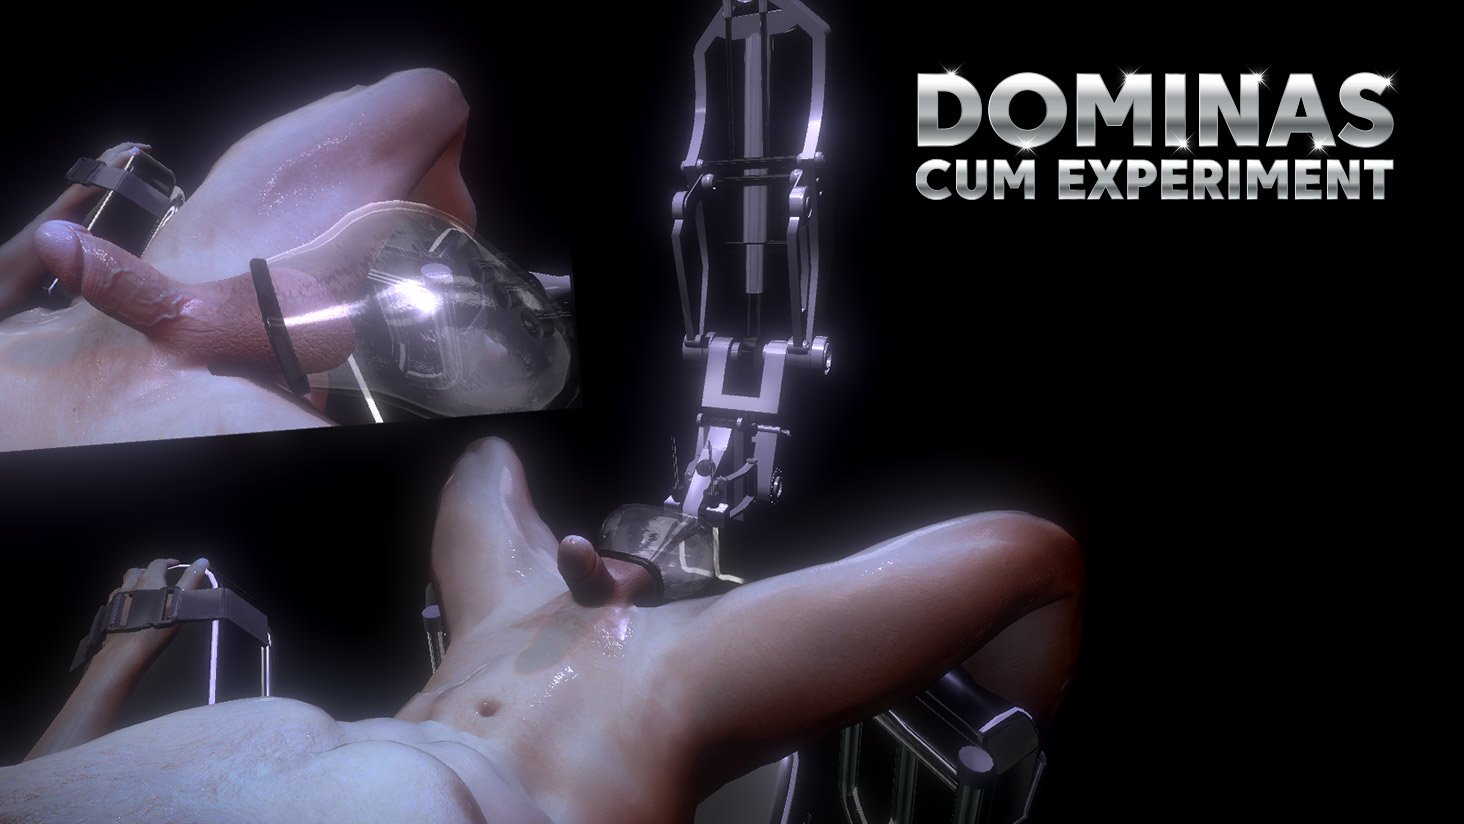 3D VR sex game cum again multiple times experiment